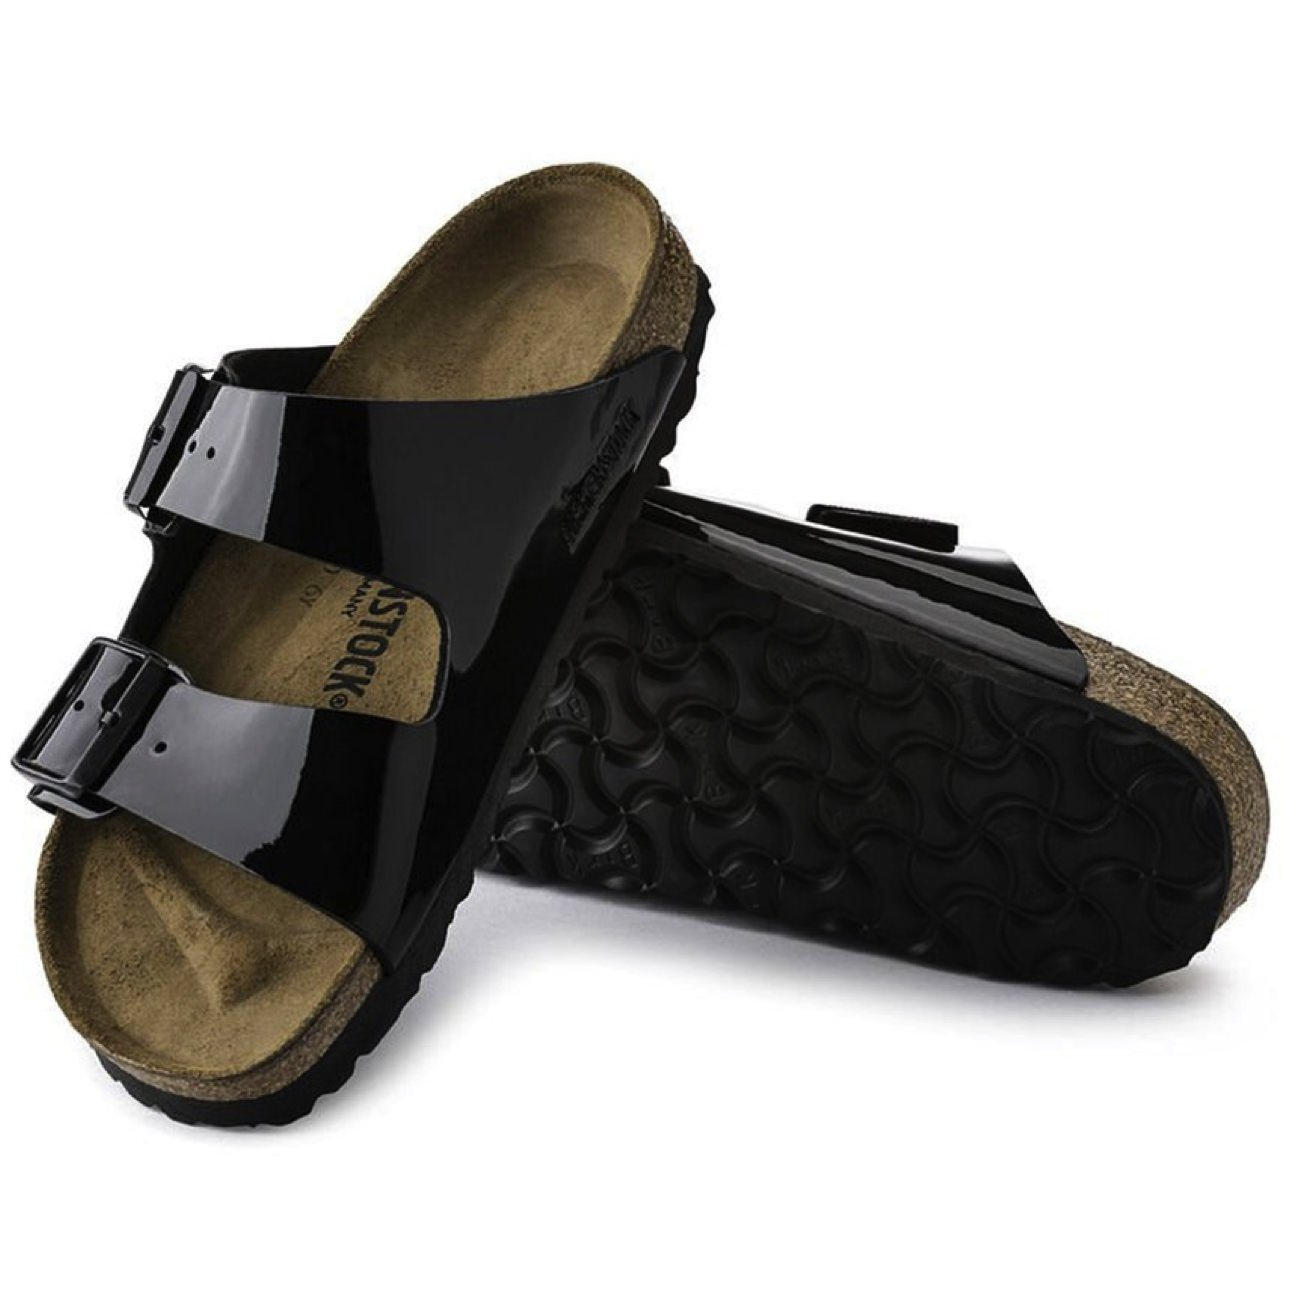 Birkenstock Classic, Arizona, Birko-Flor Patent, Regular Fit, Black Sandals Birkenstock Classic Black 35